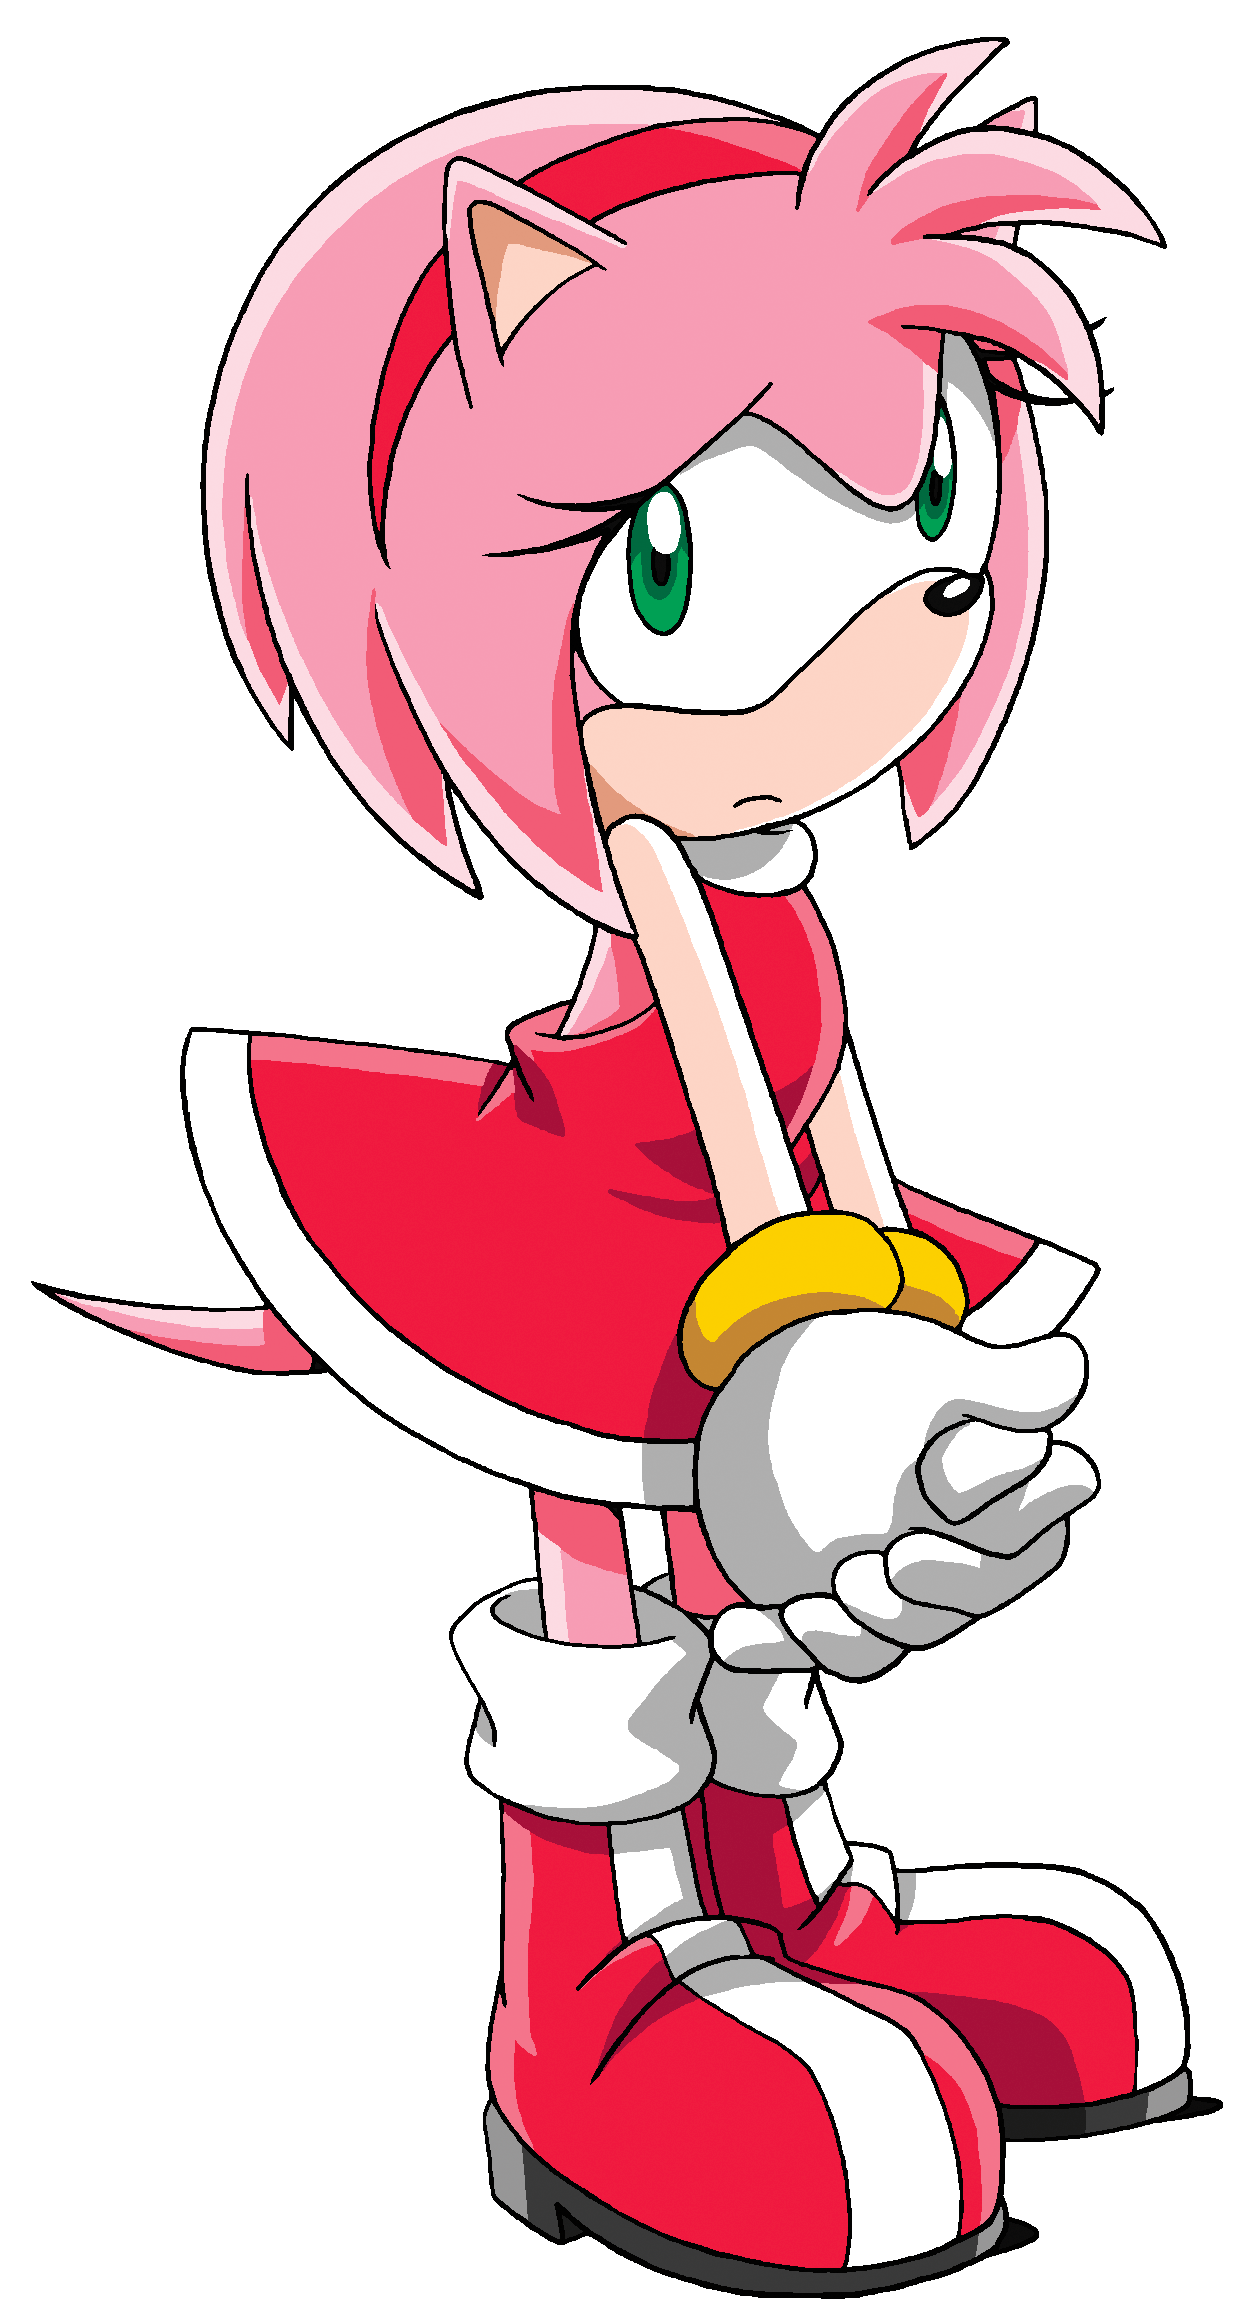 Sonic x down amy rose gallery sonic scanf - Amy rose sonic x ...